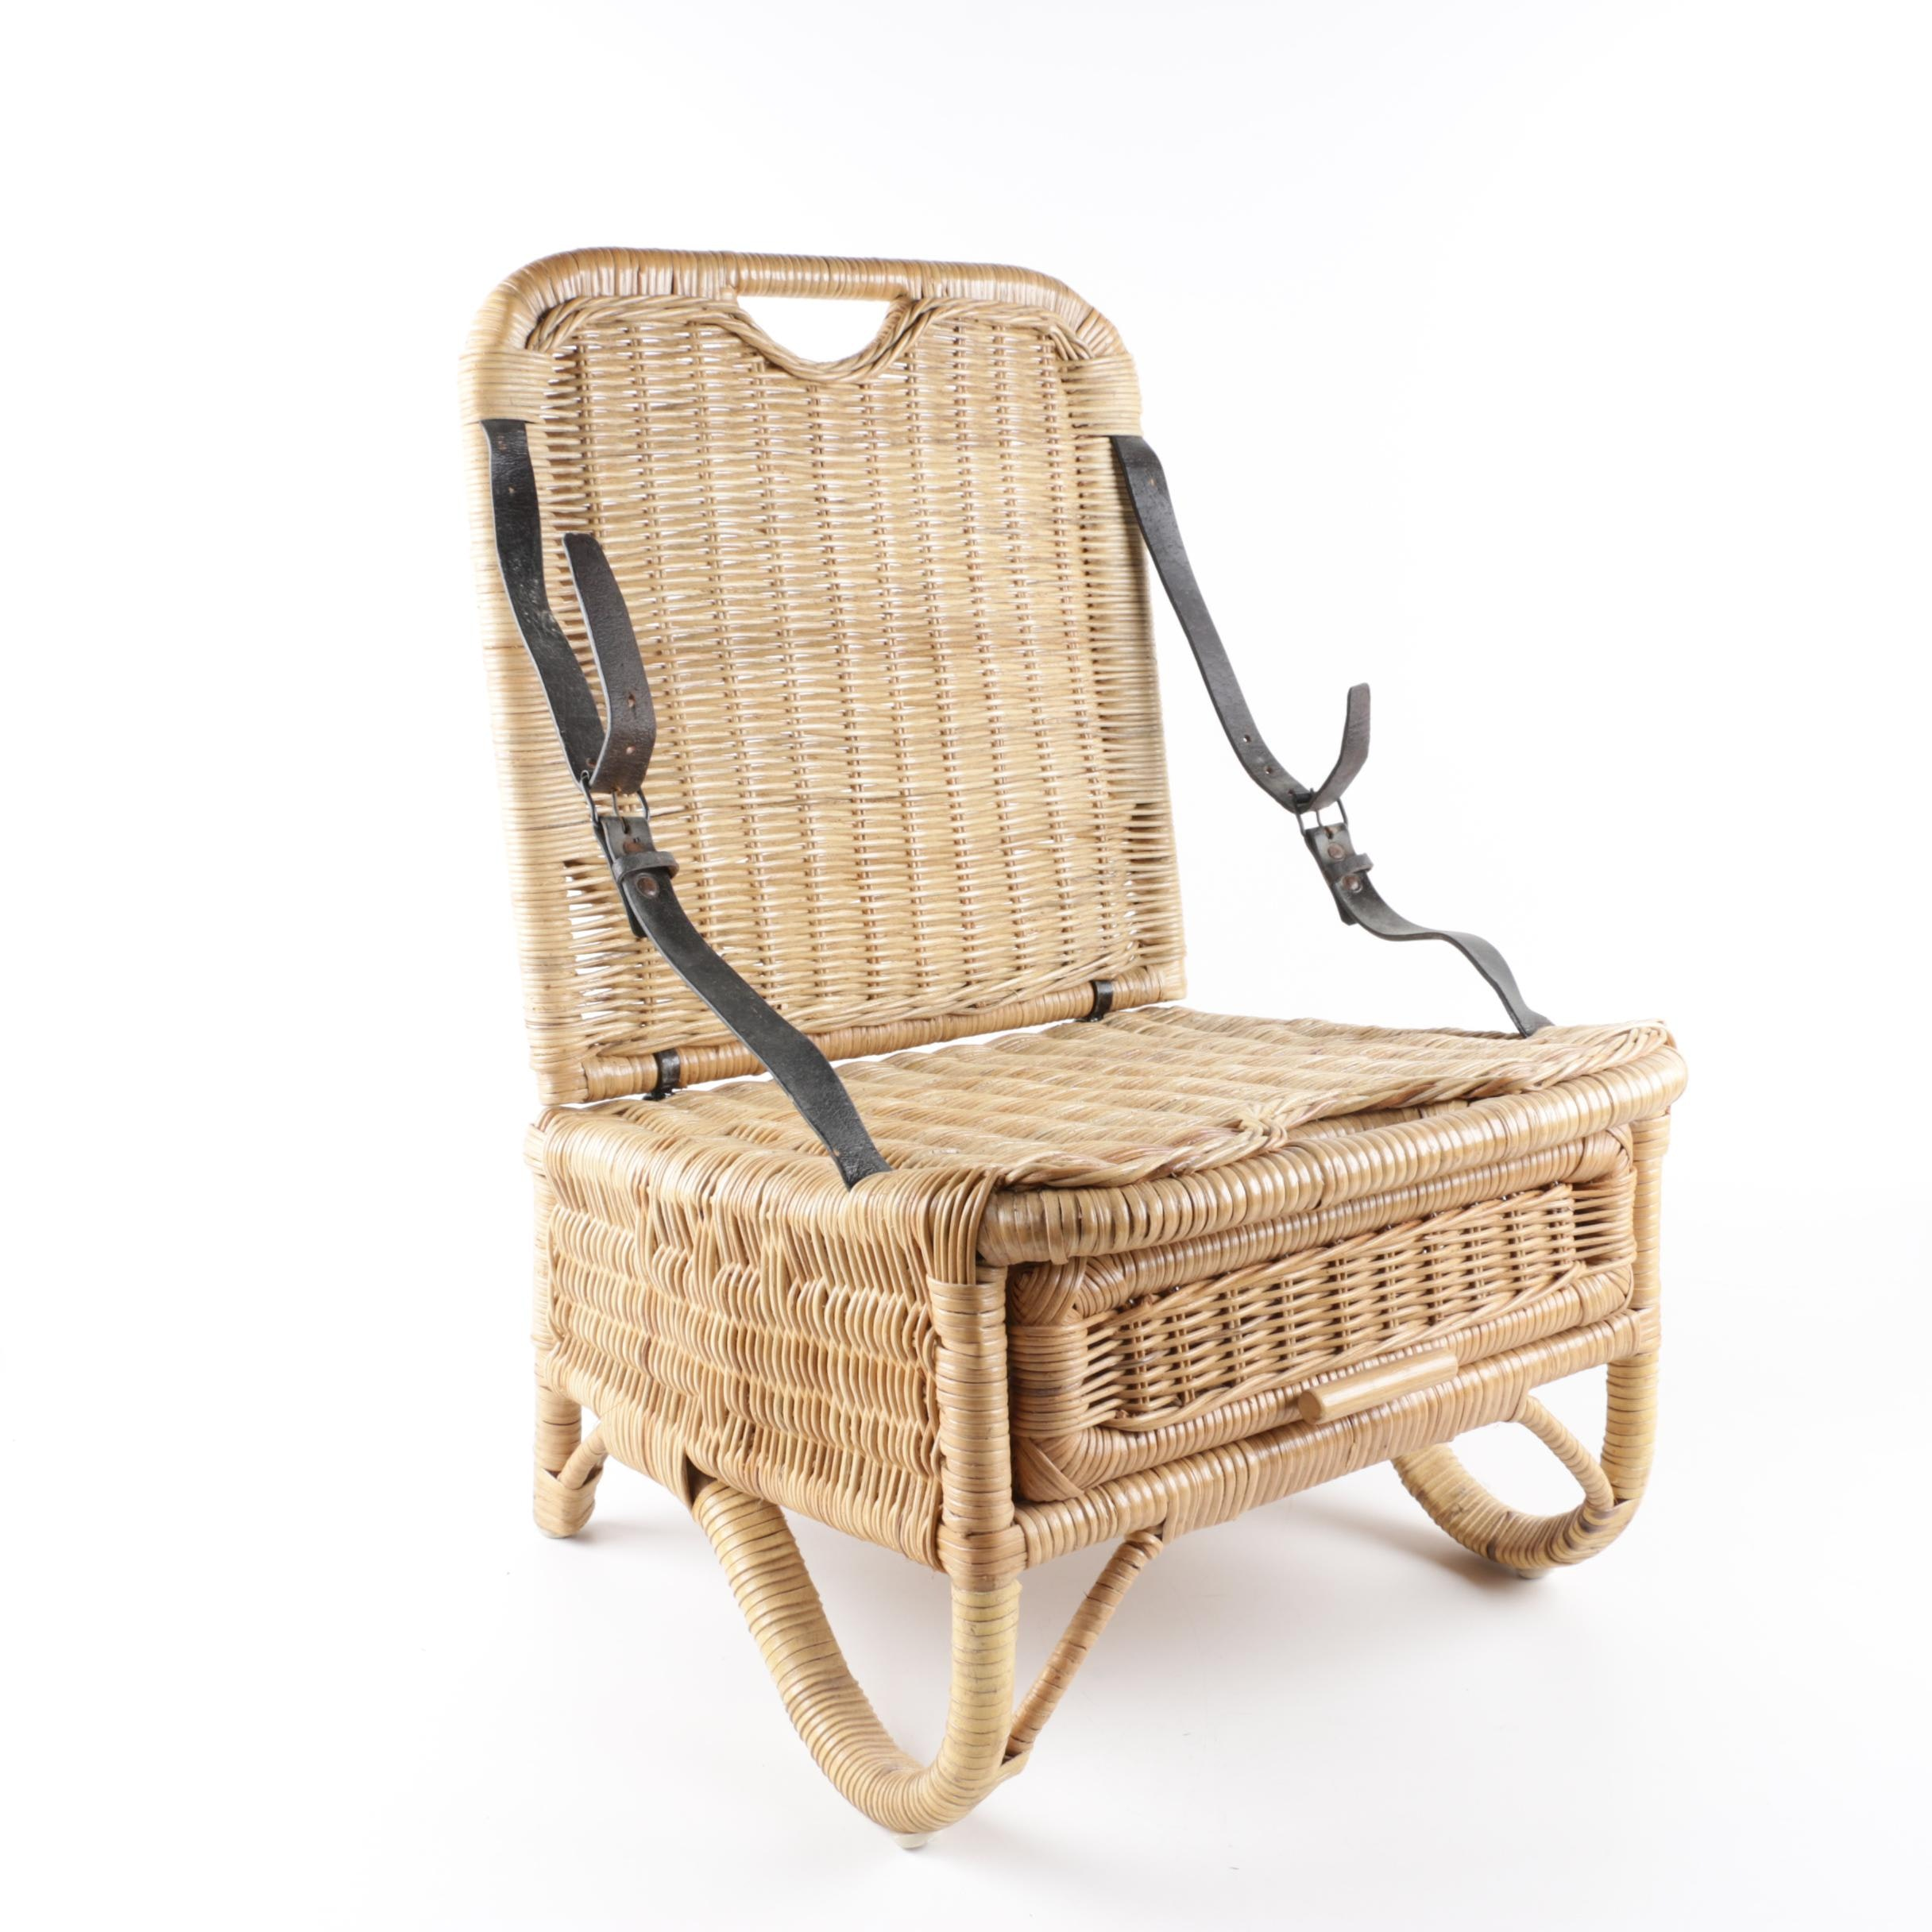 Wicker Weave Picnic Basket Chair